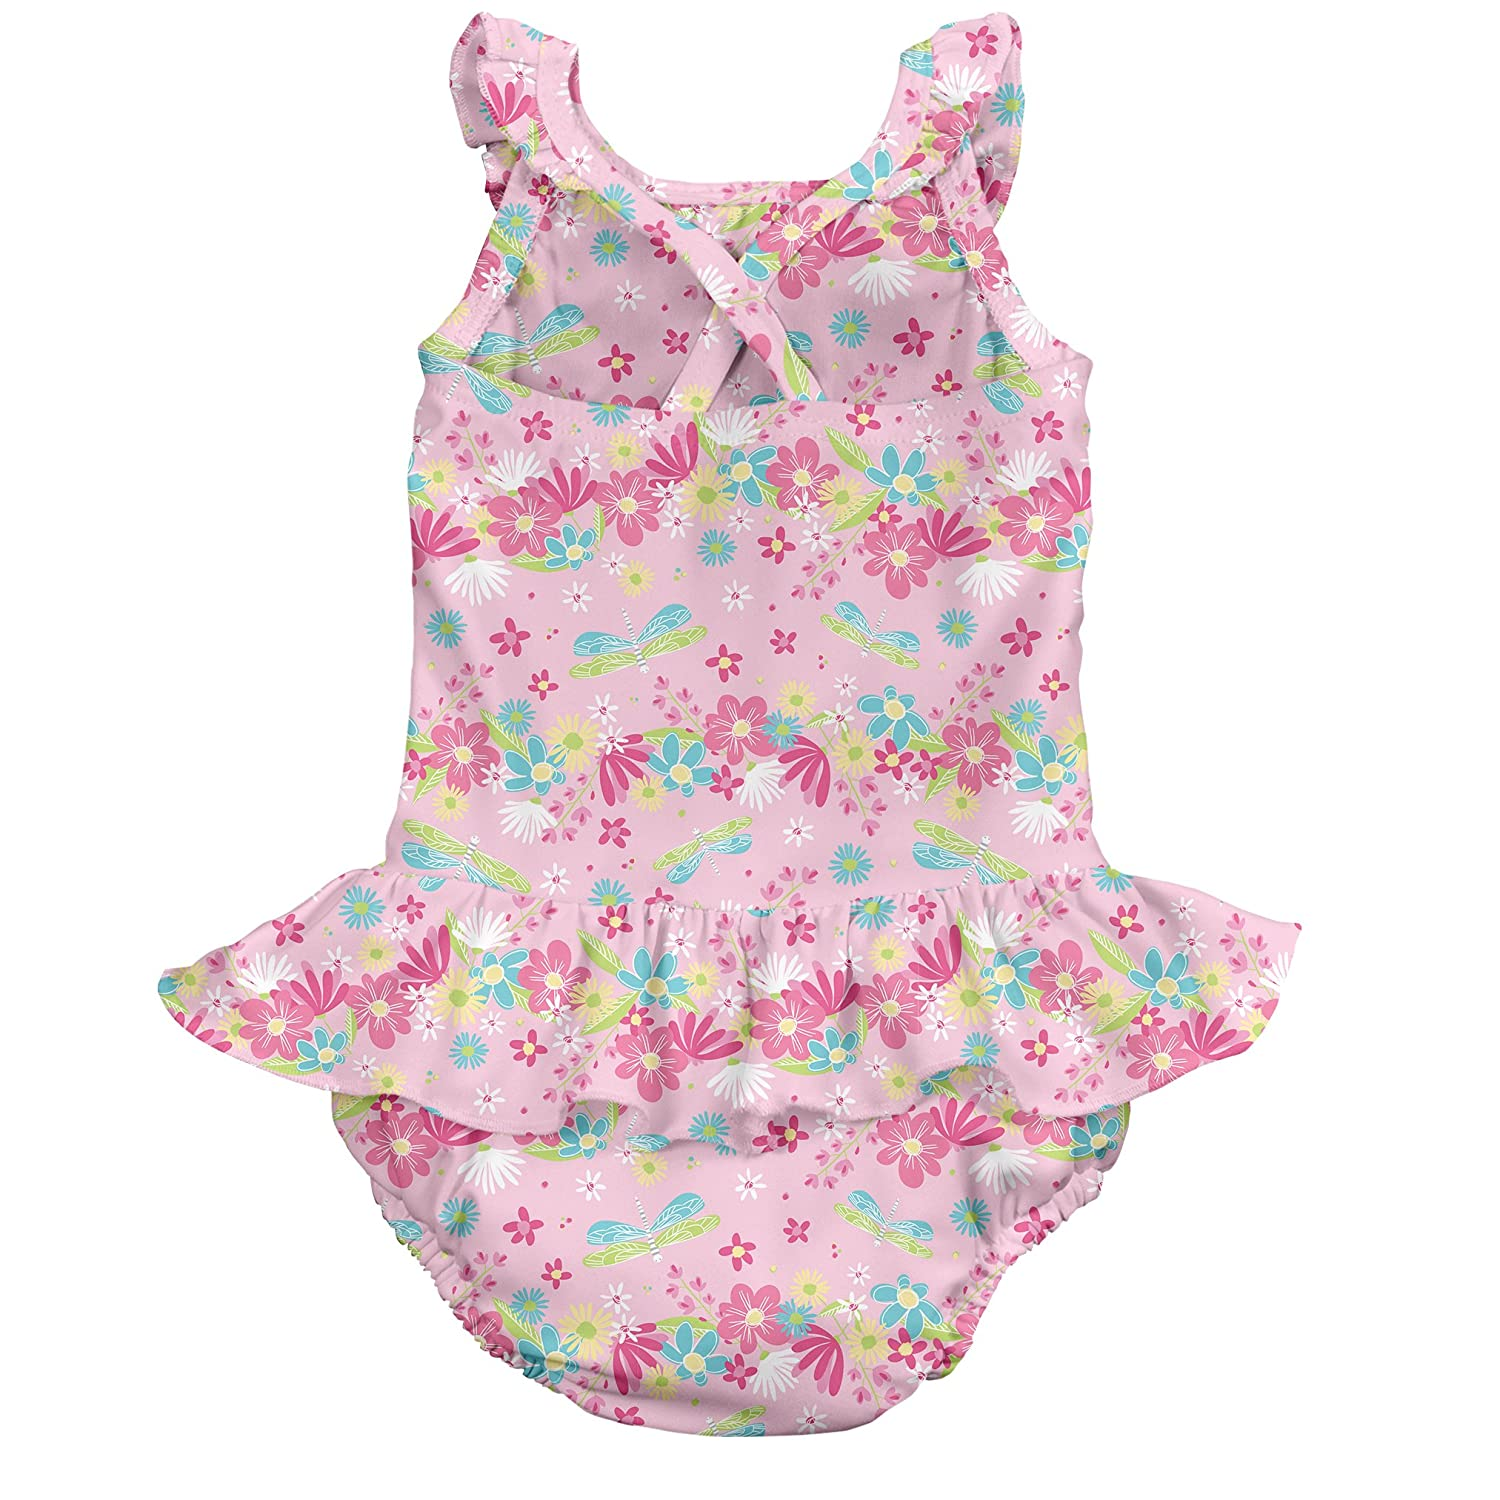 by green sprouts Girls Swimsuit i play